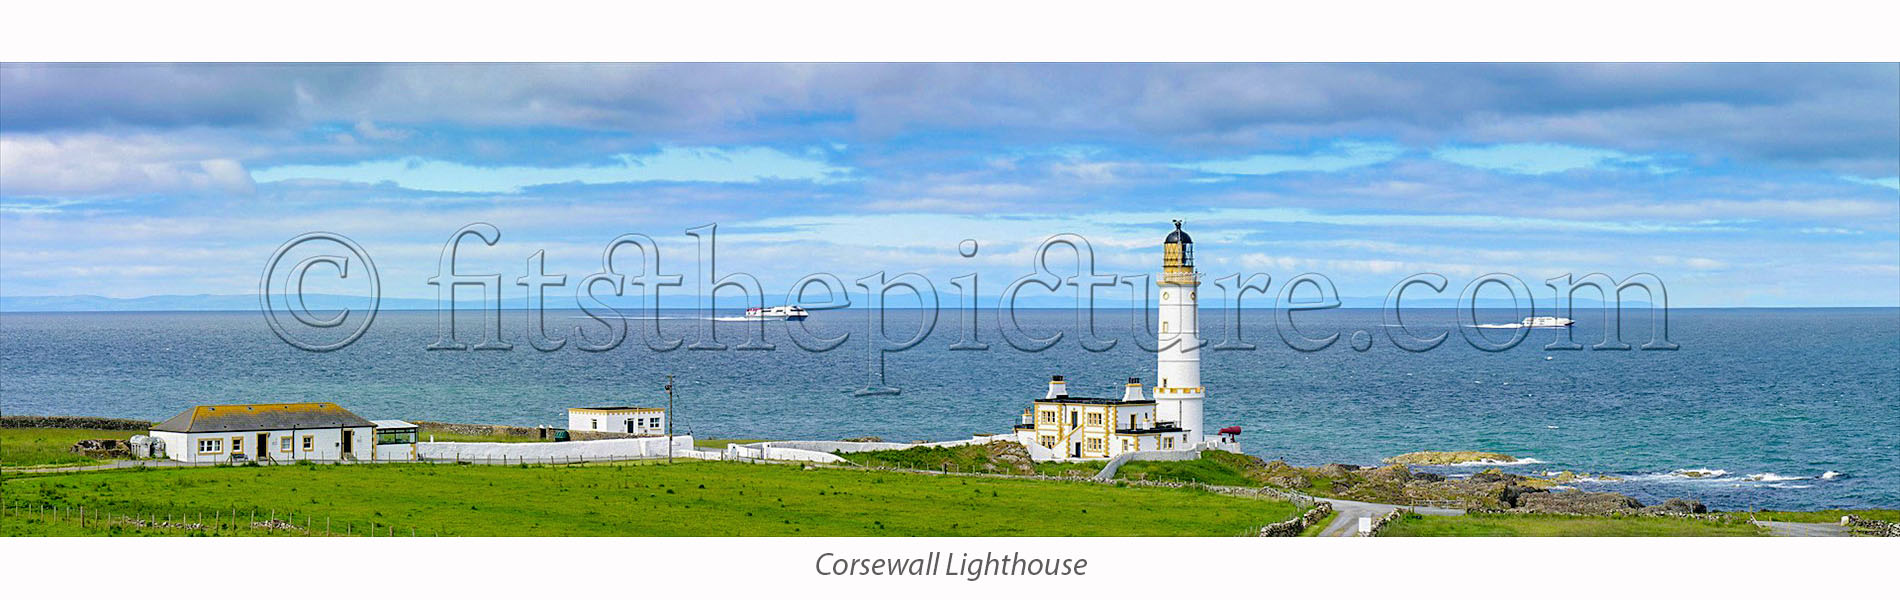 corsewall_lighthouse_2.jpg